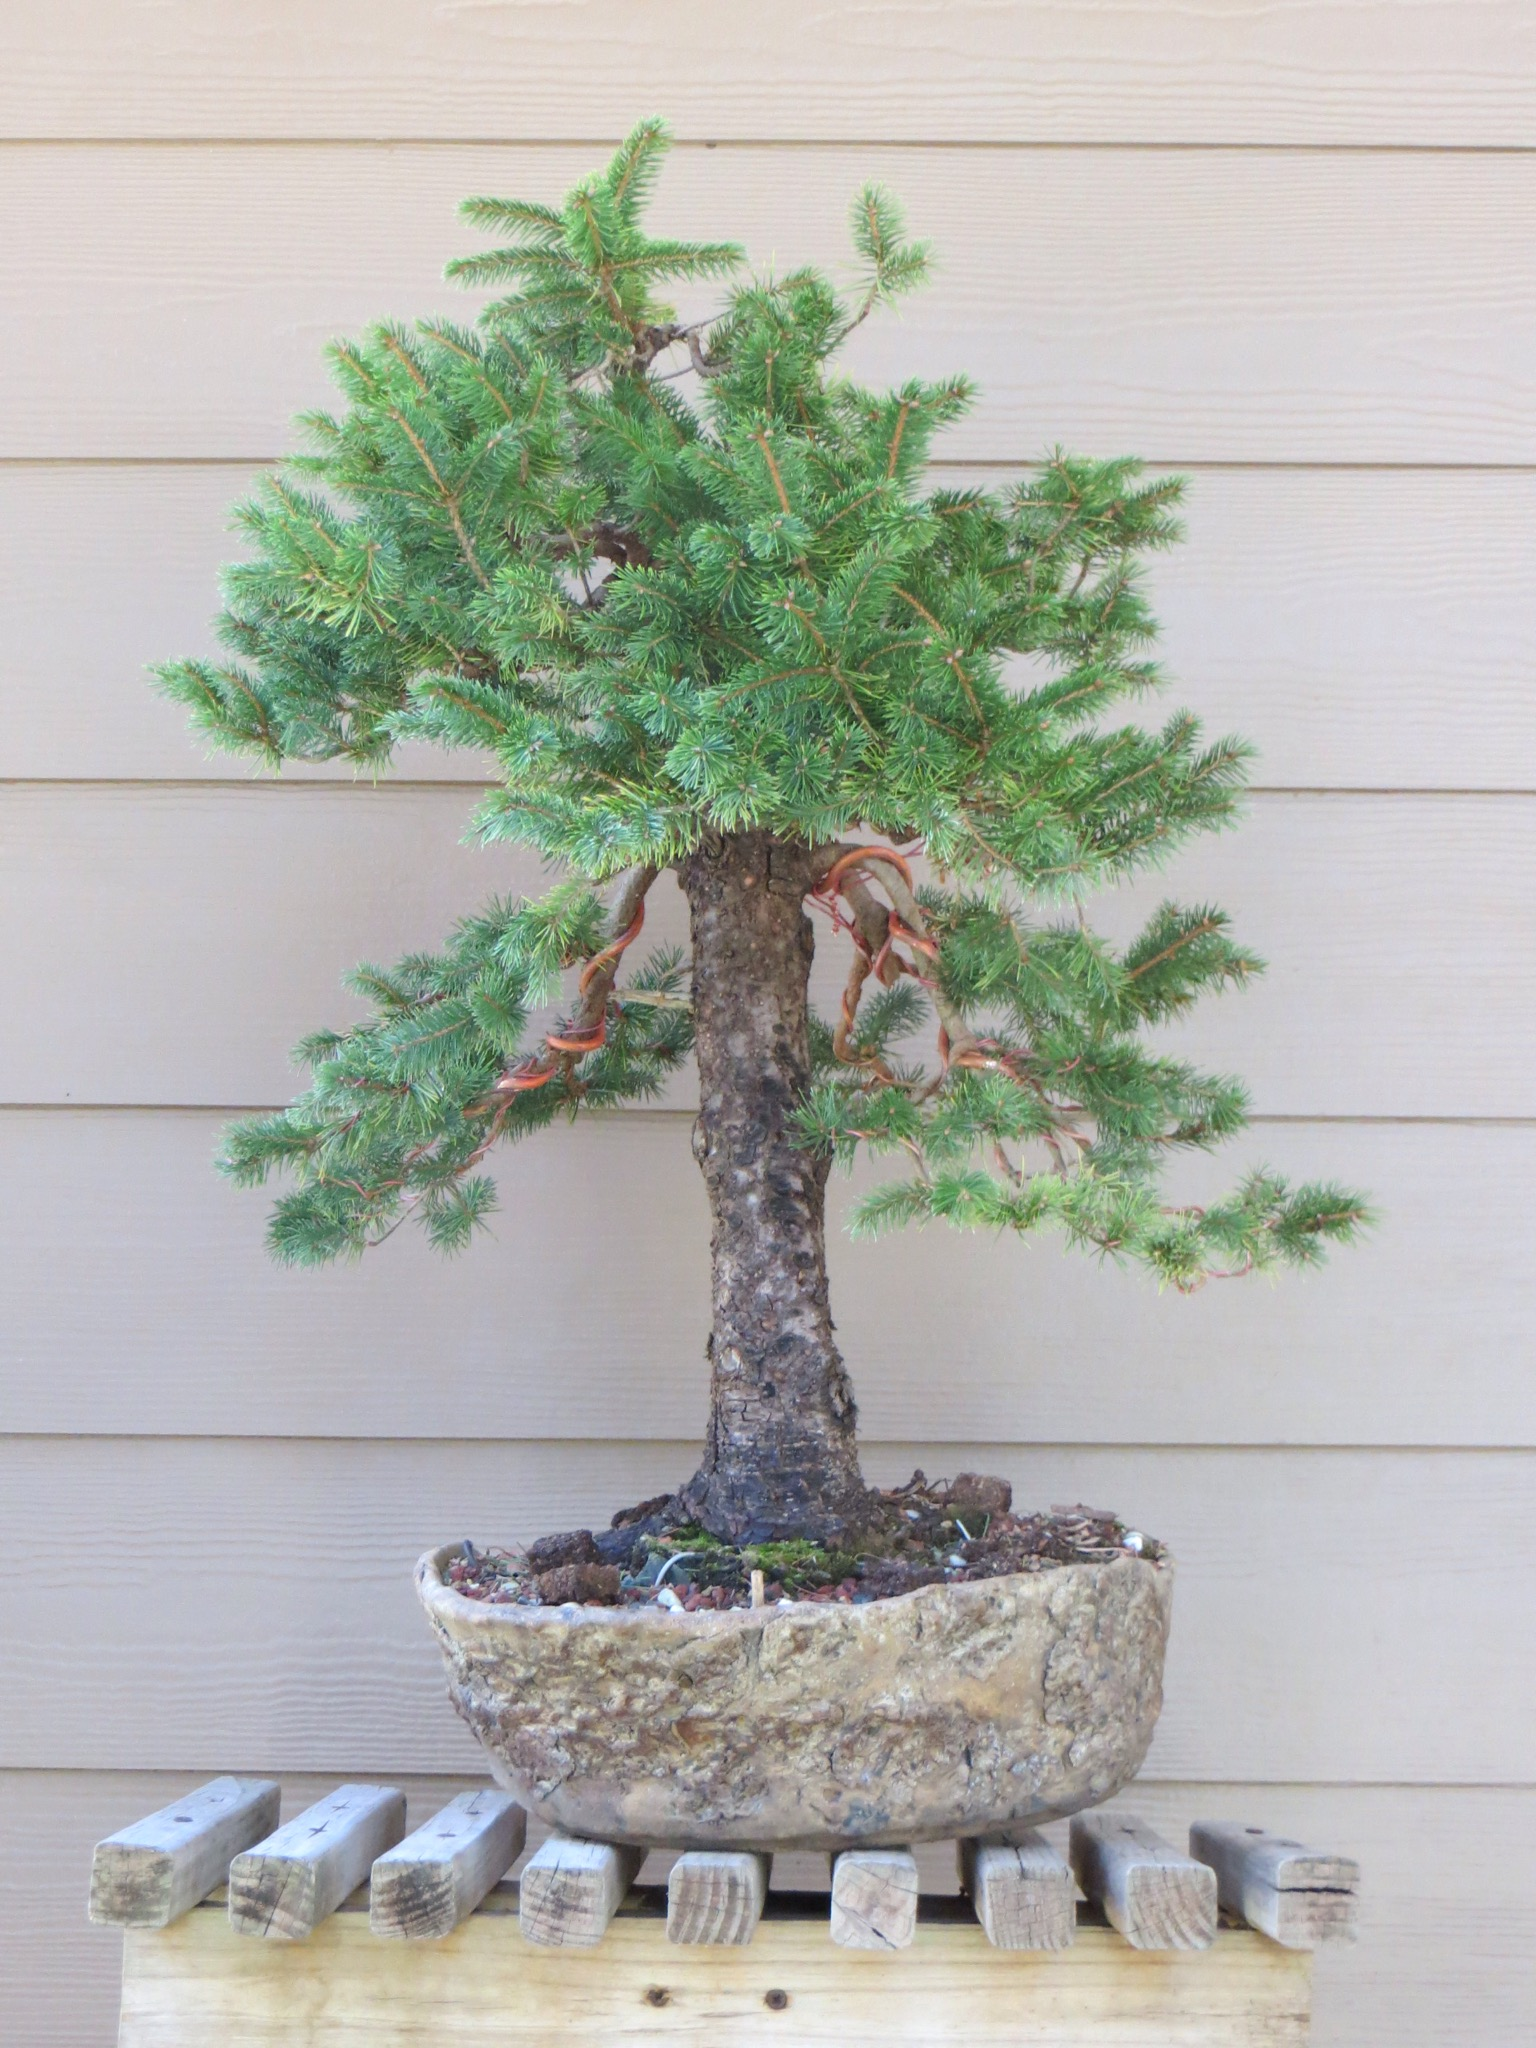 ezo spruce pruning and wiring nebari bonsai rh nebaribonsai wordpress com Cedar Bonsai Cypress Bonsai